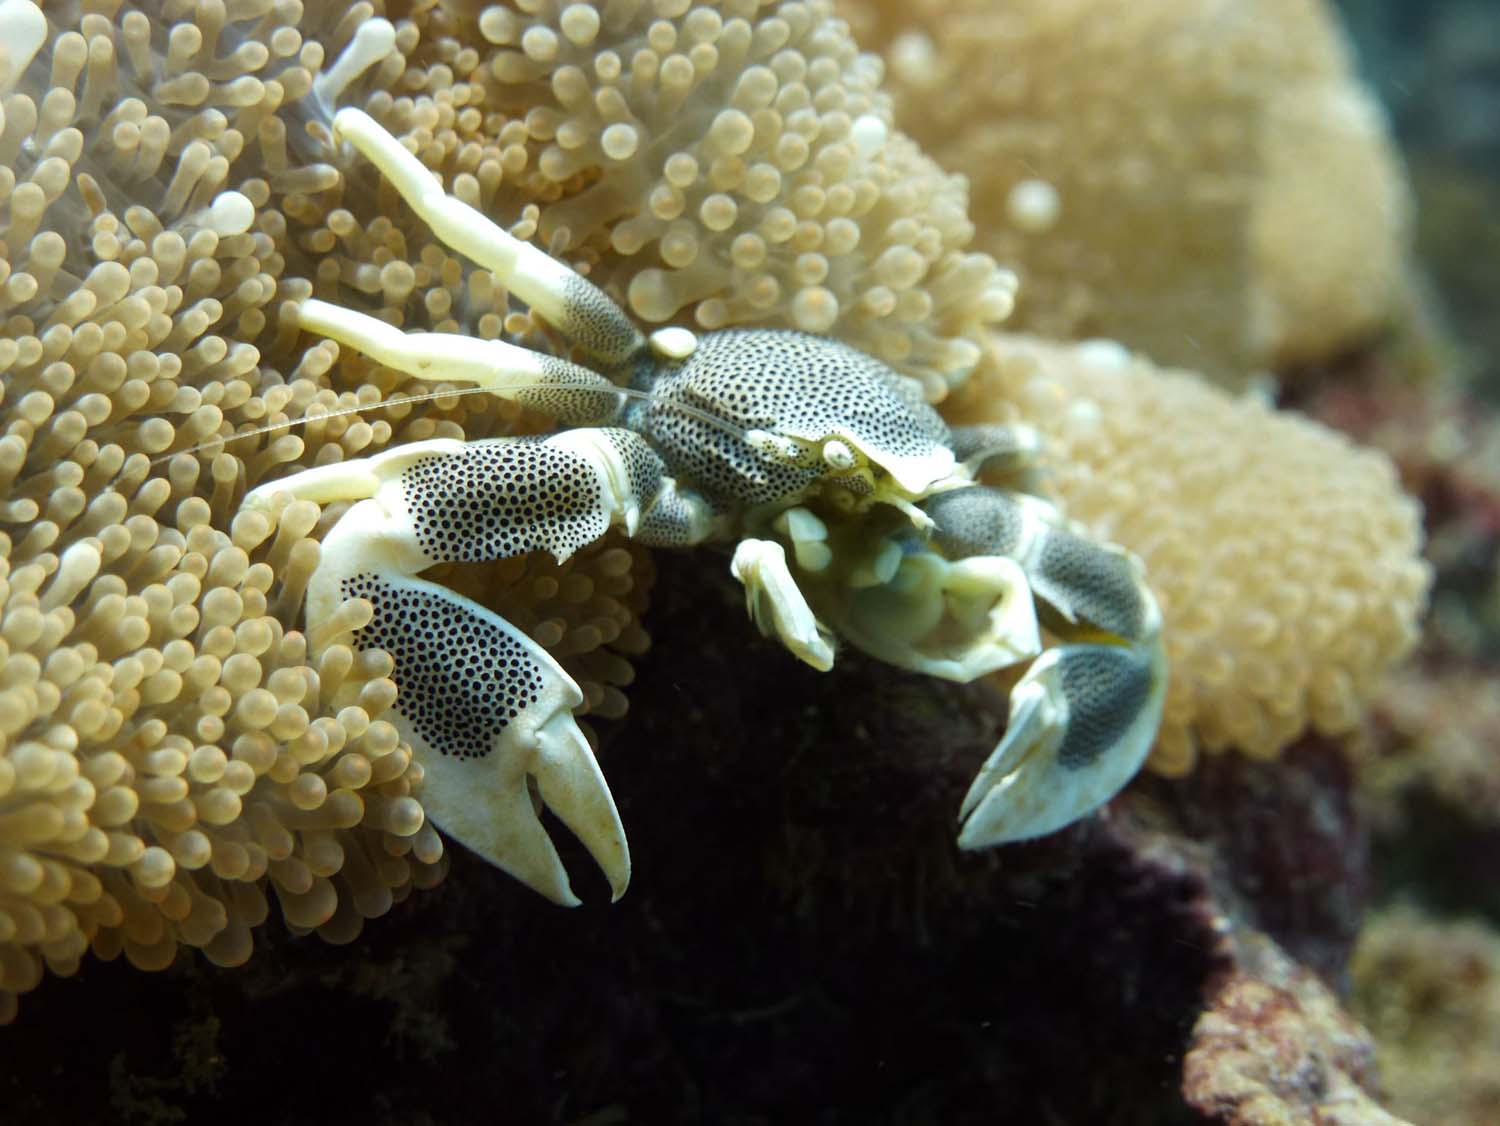 anemone crab (who hides in the anemone like a nemo fish when there is danger)